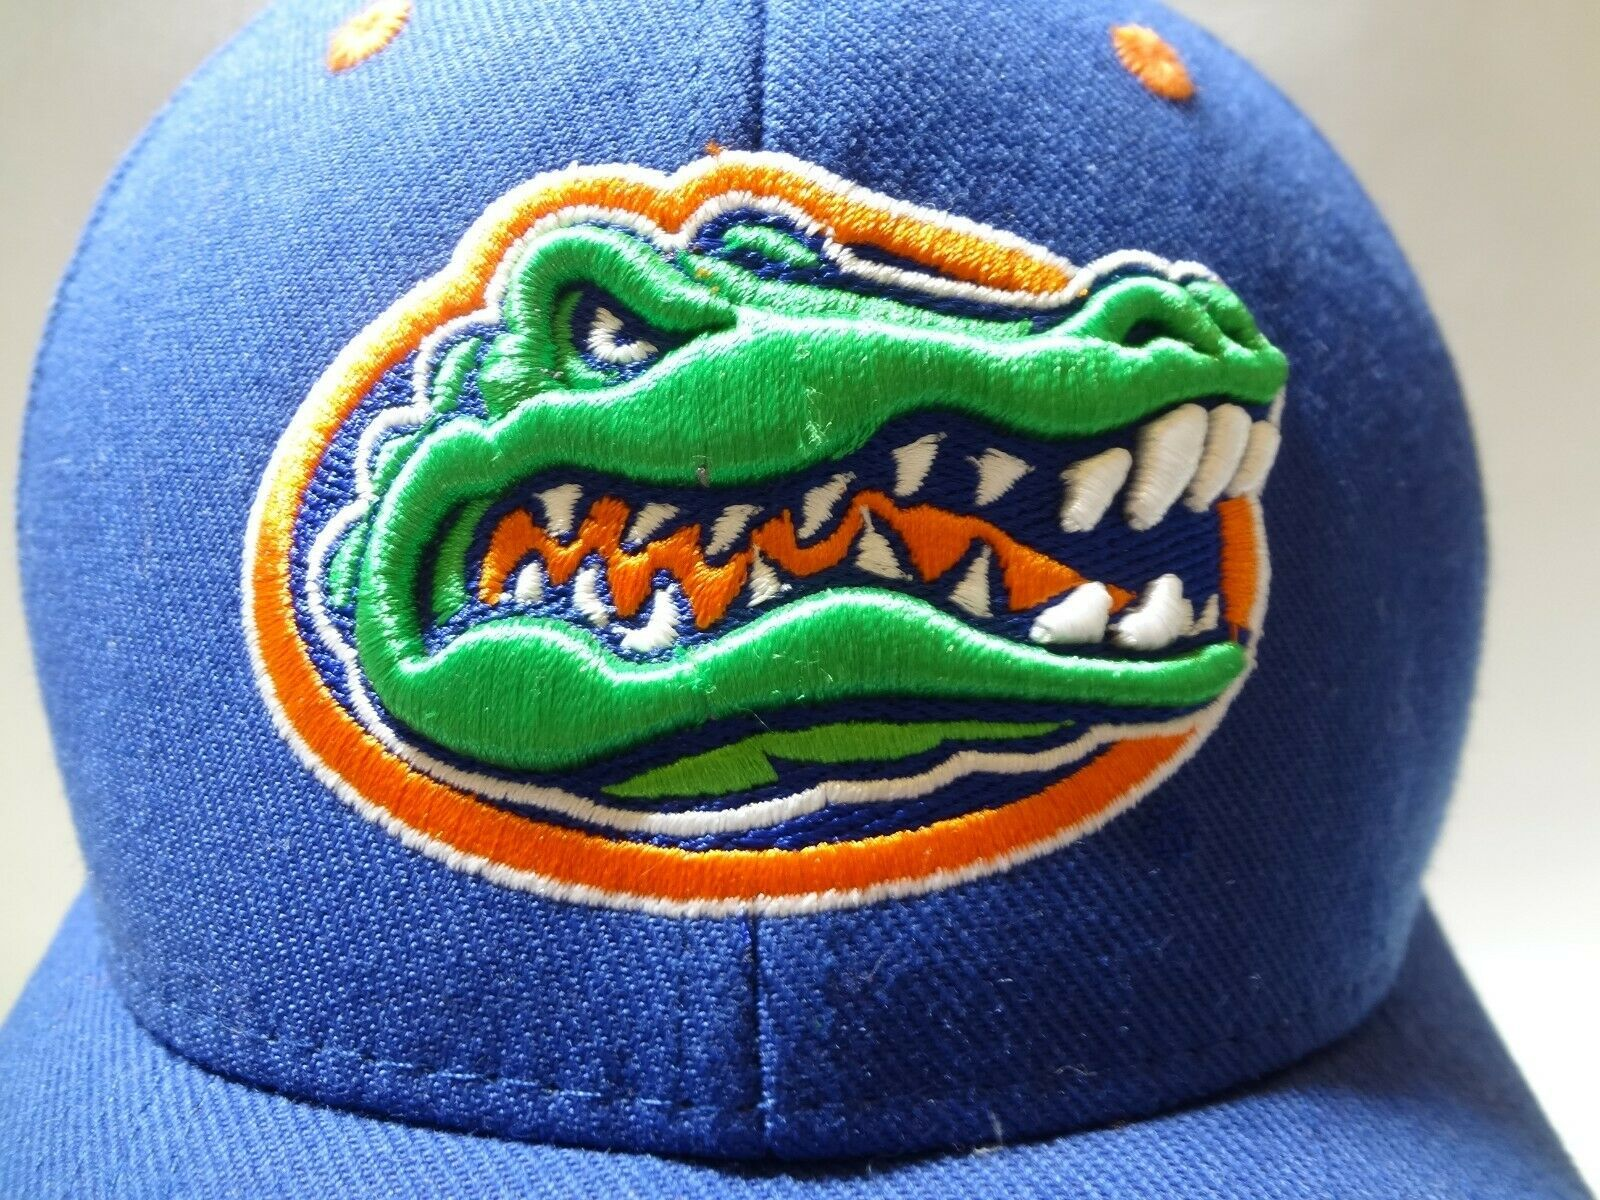 New University Of Florida UF Zephyr Fitted Cap Hat 7 1/2 Z brand College  image 3